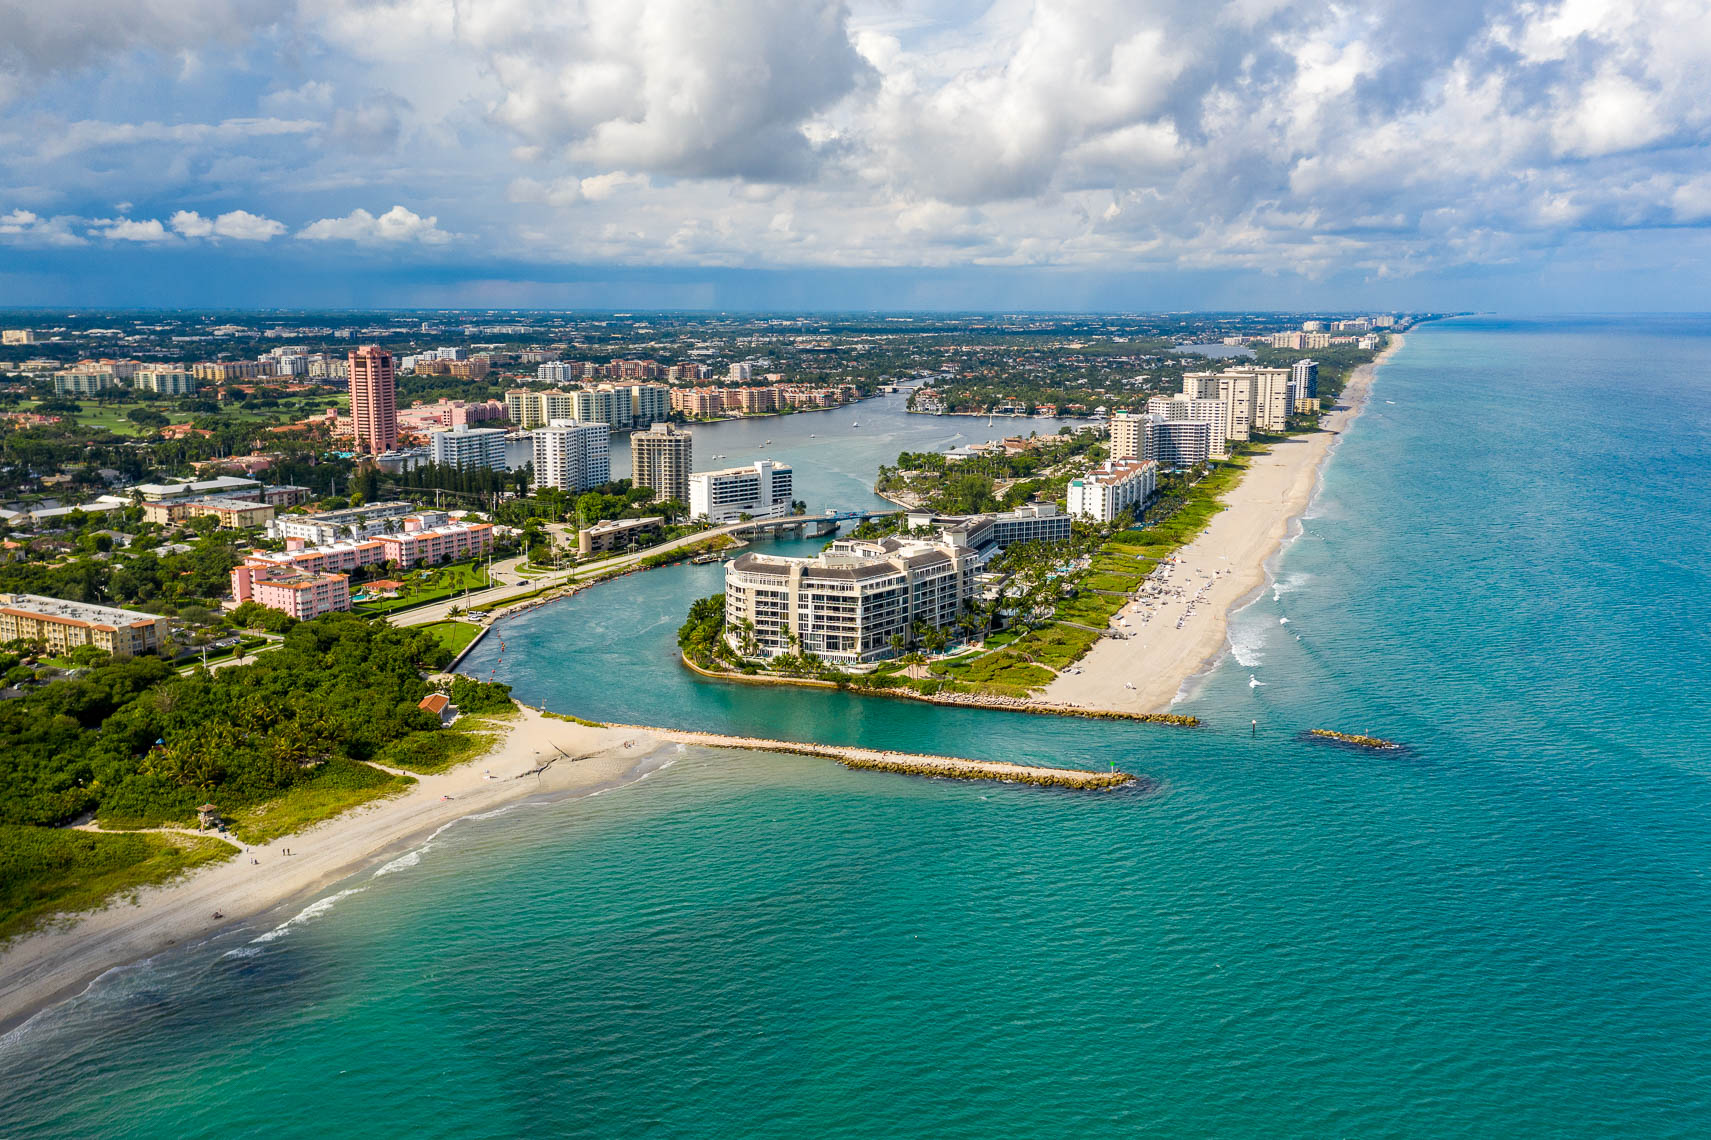 Aerial drone shot of the Boca Raton Inlet